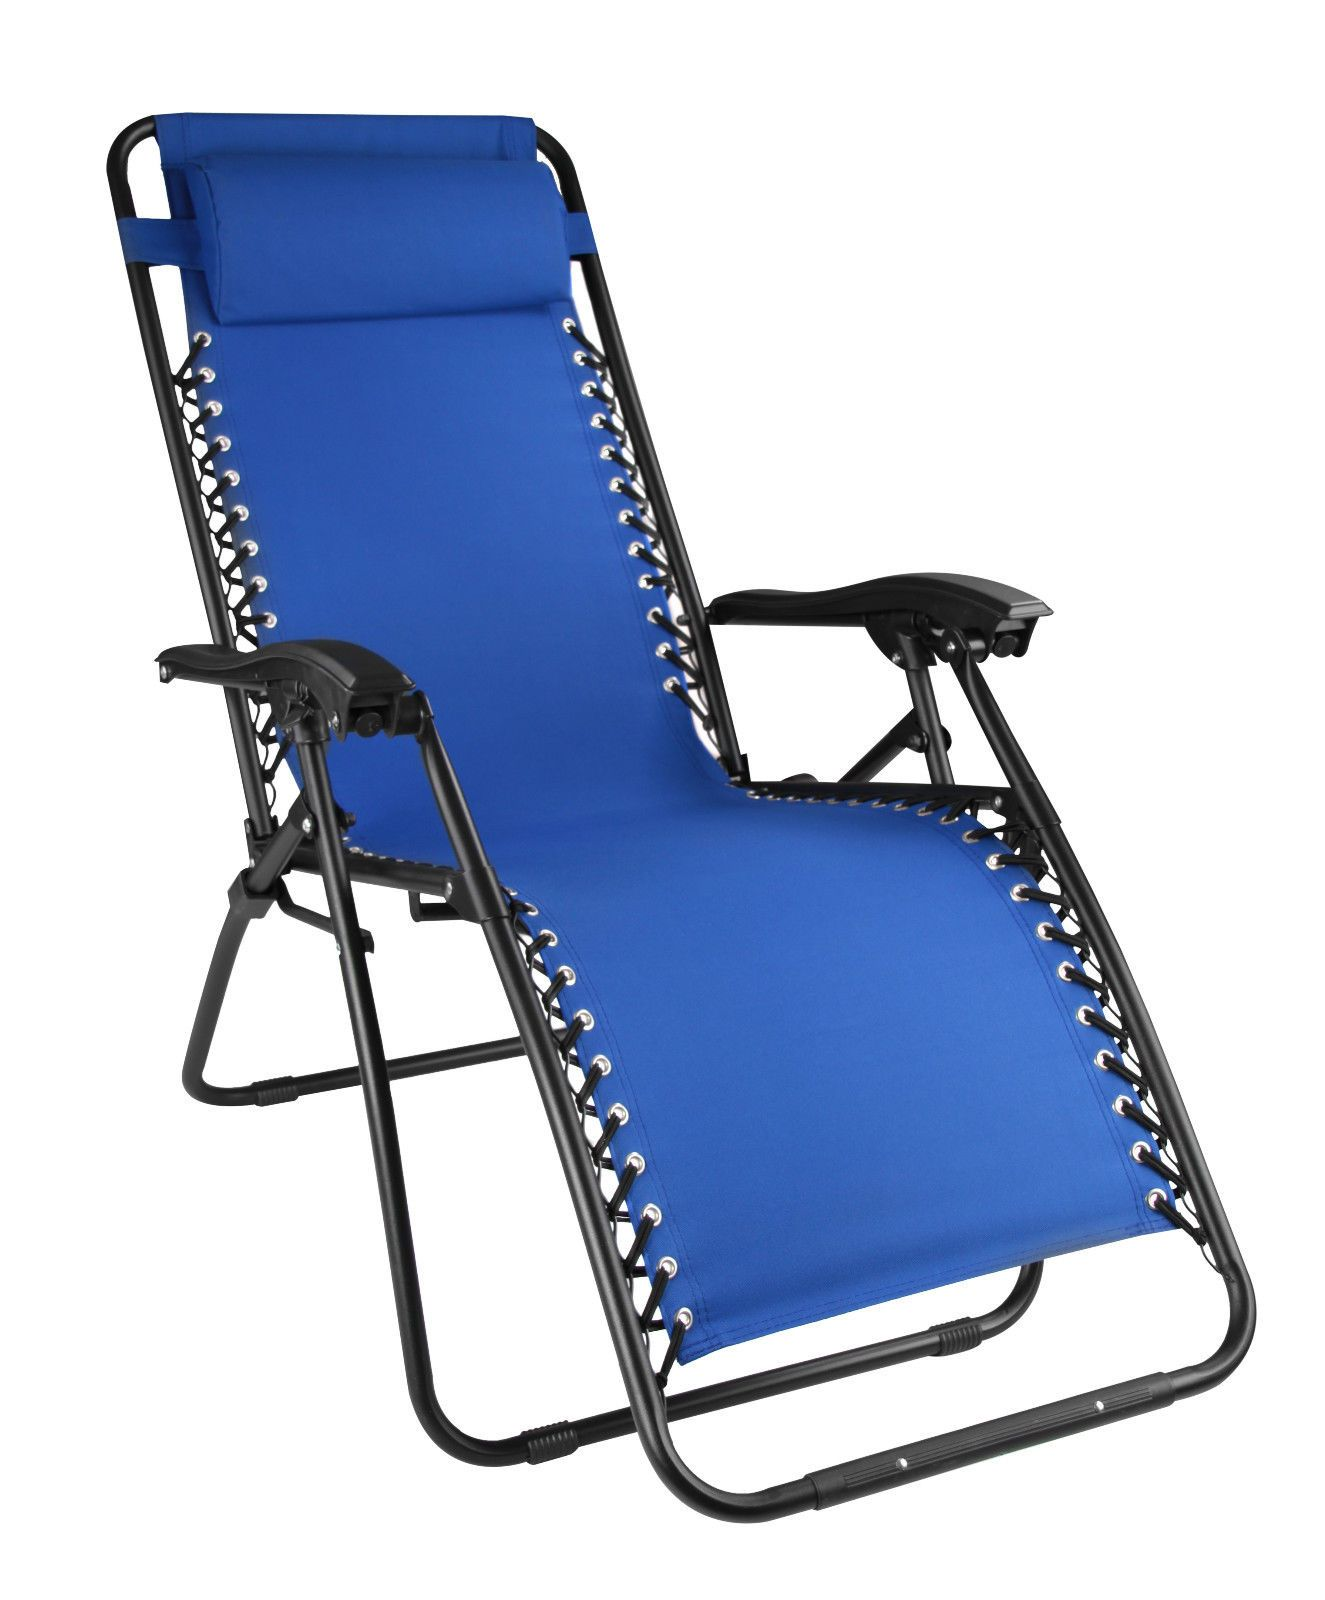 Hectare Osterley Zero Gravity Chair Garden Recliner Patio Folding ...